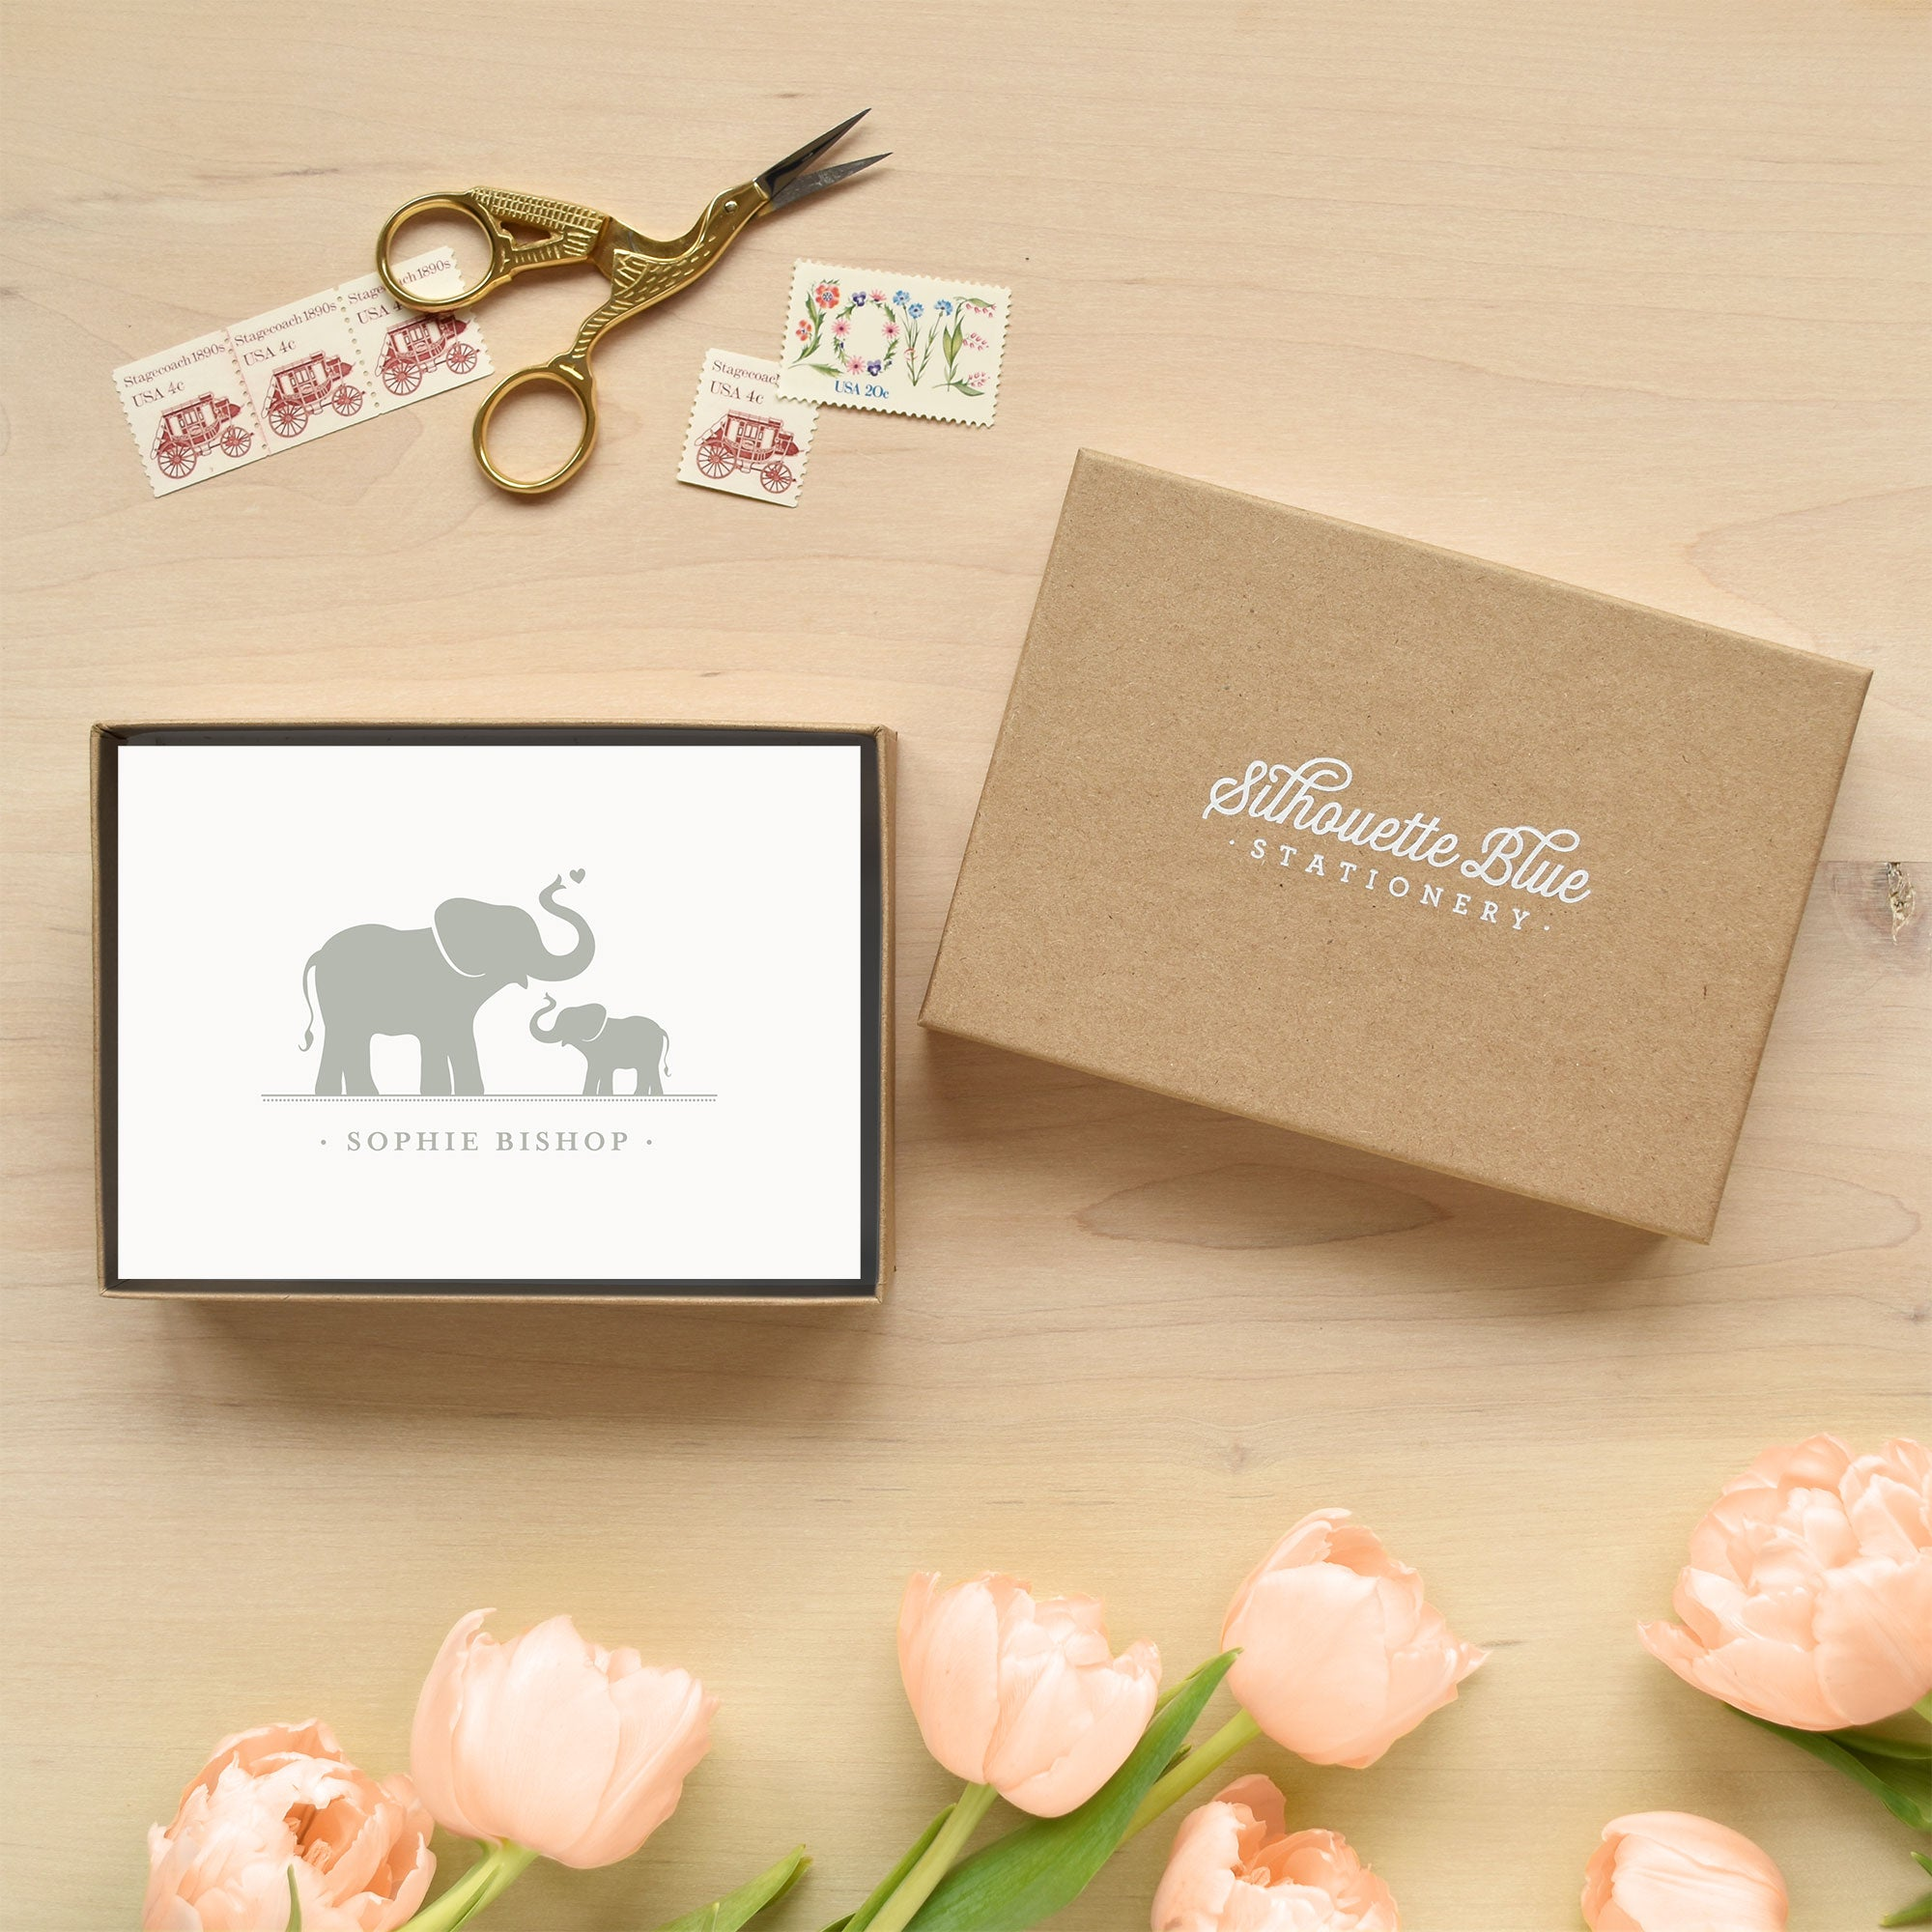 Dearest Personalized Stationery